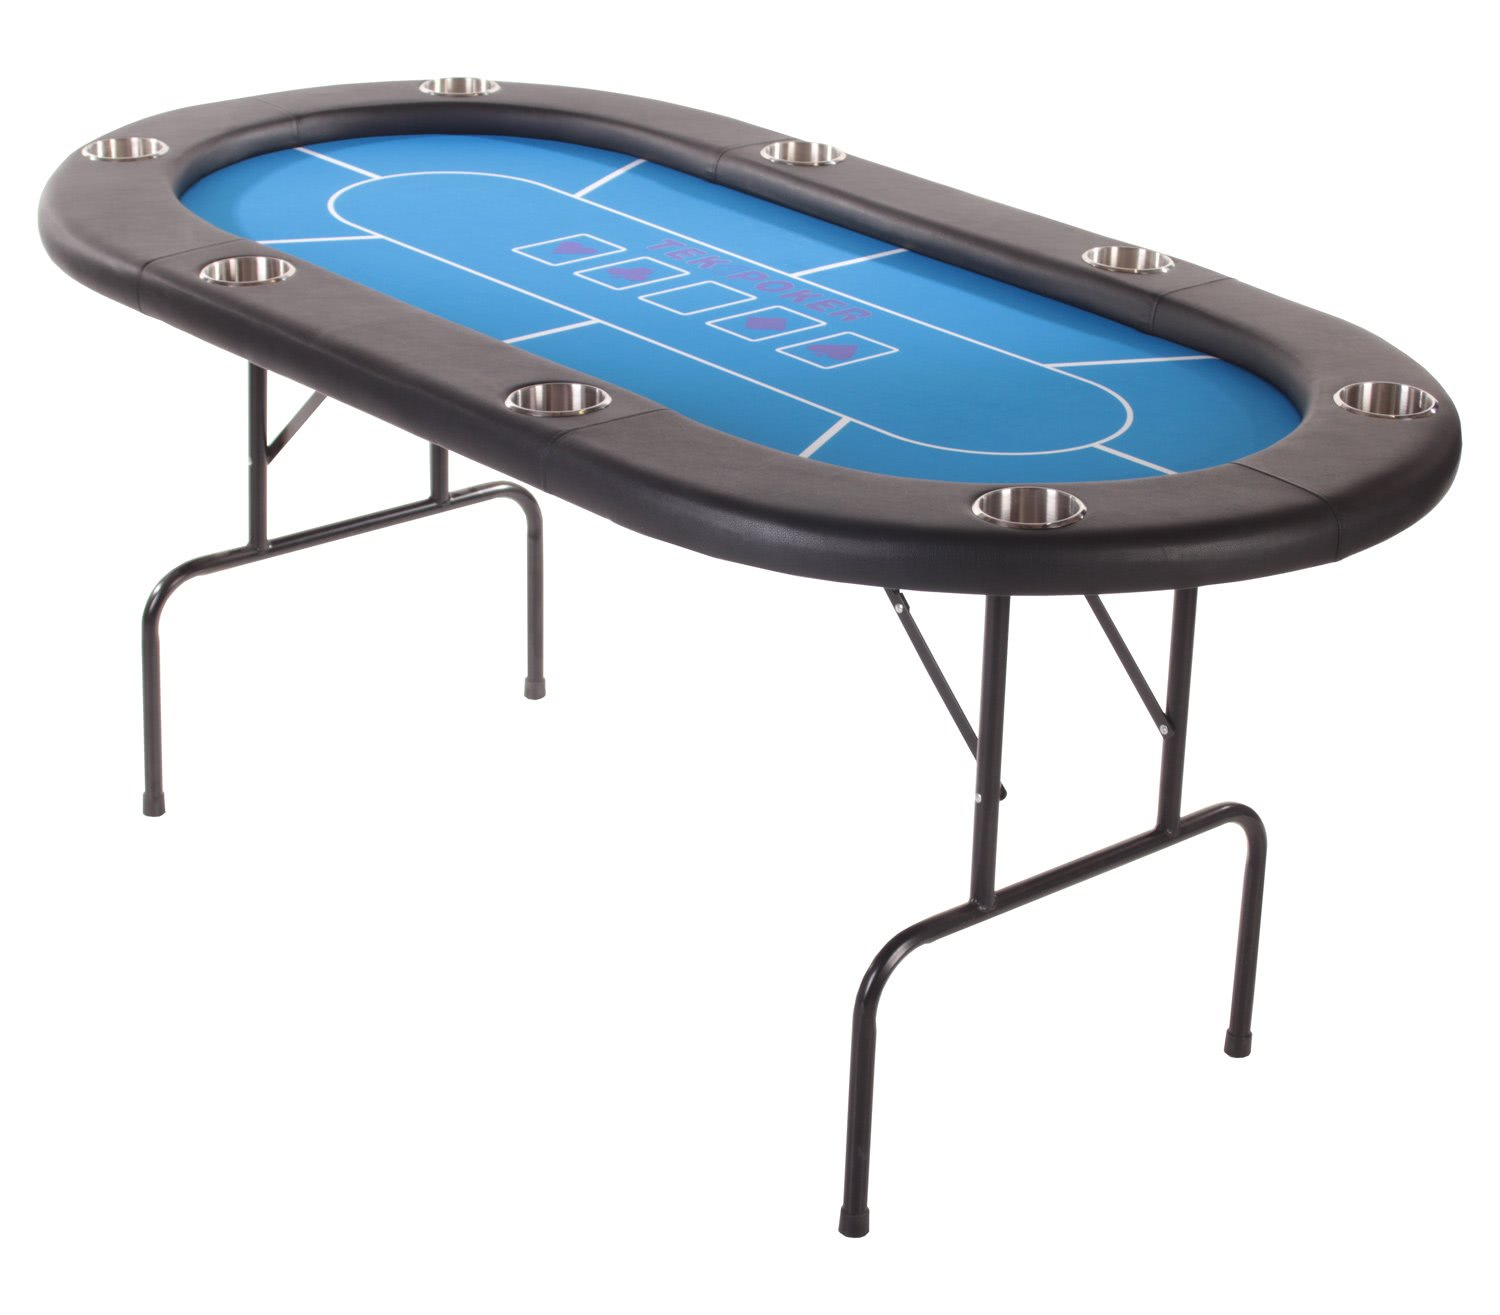 Pictures of gambling tables